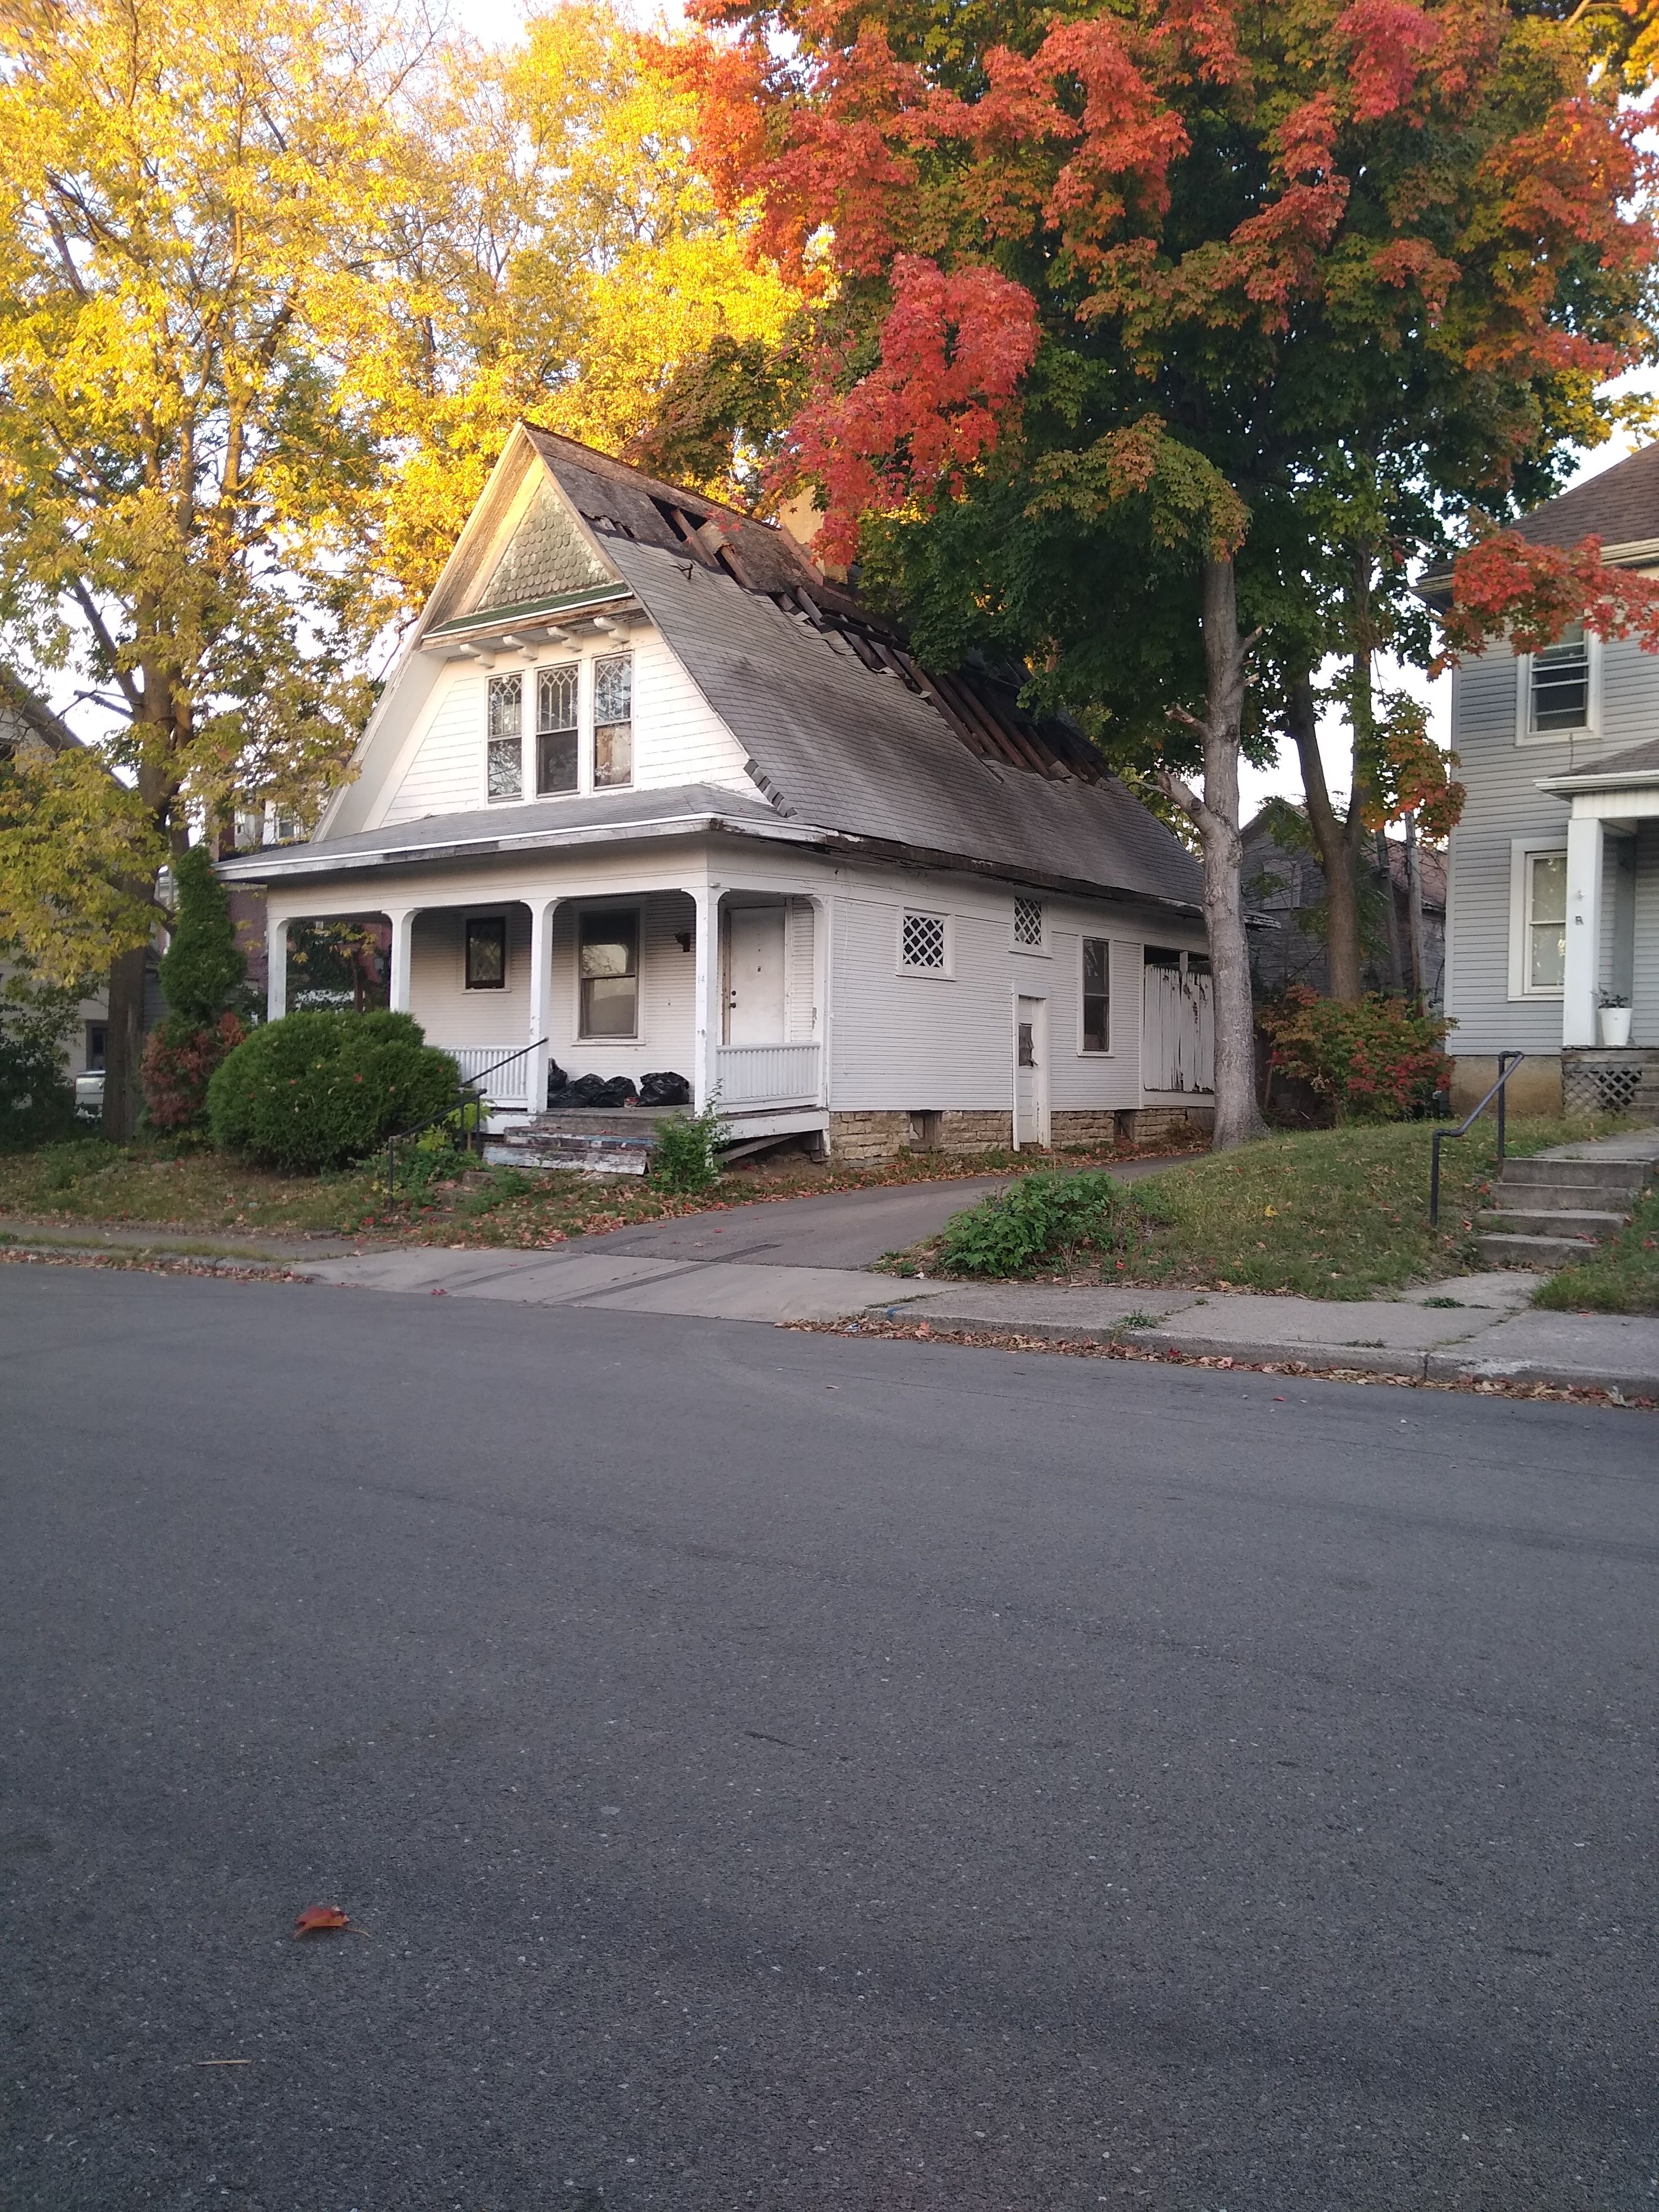 14 Parnell Ave (Image - 1)